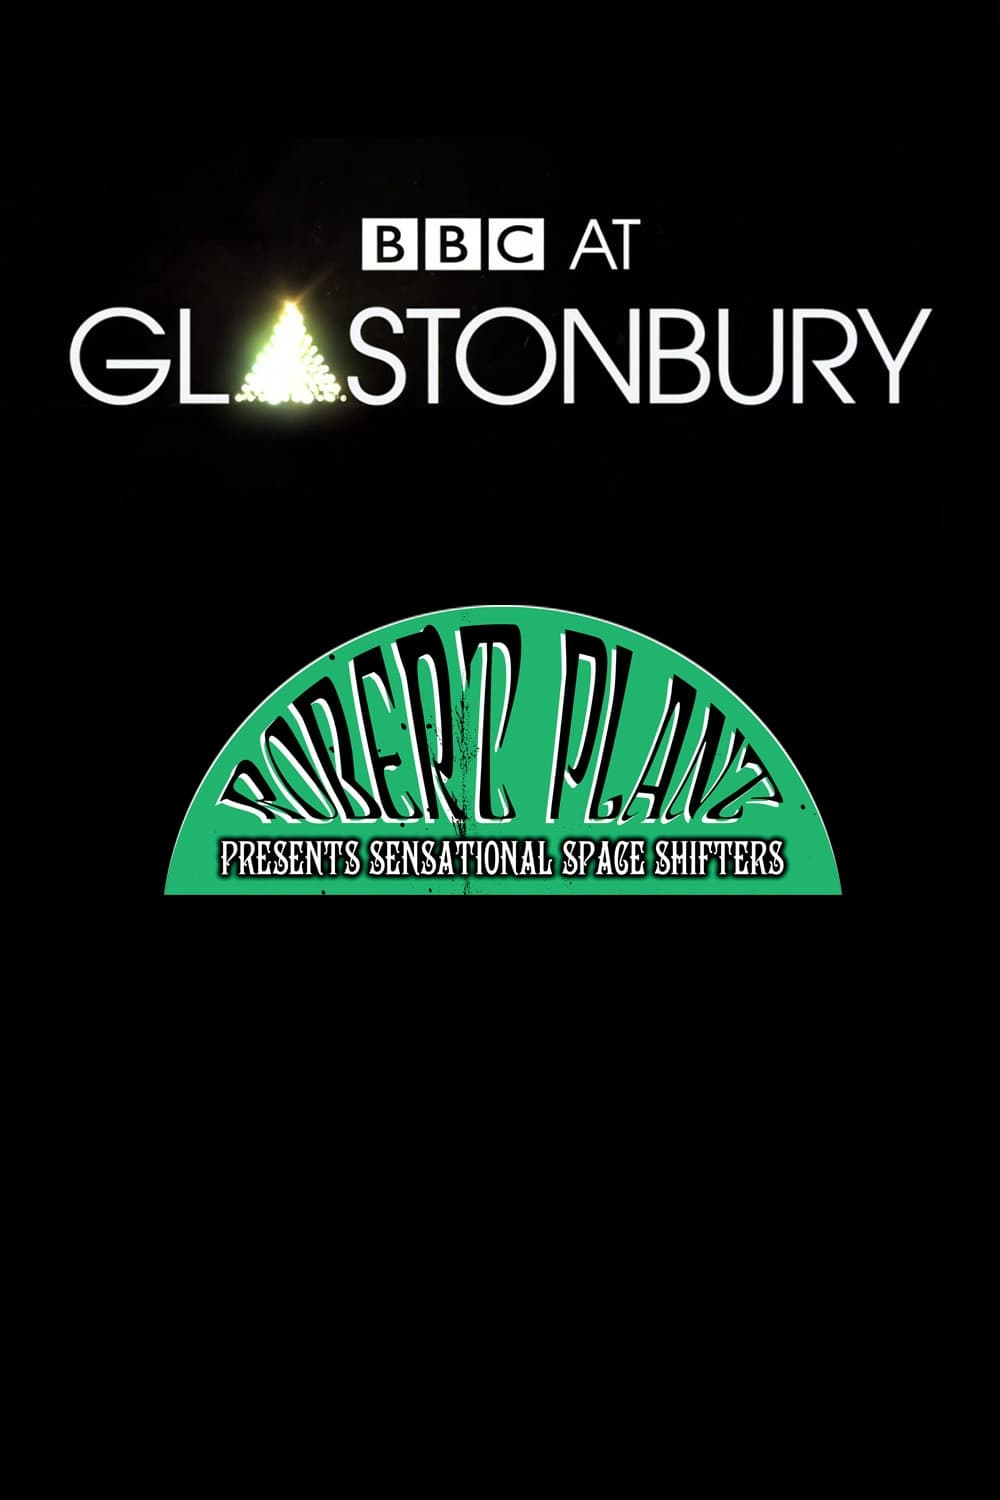 Robert Plant & The Sensational Space Shifters - Glastonbury 2014 (2014)